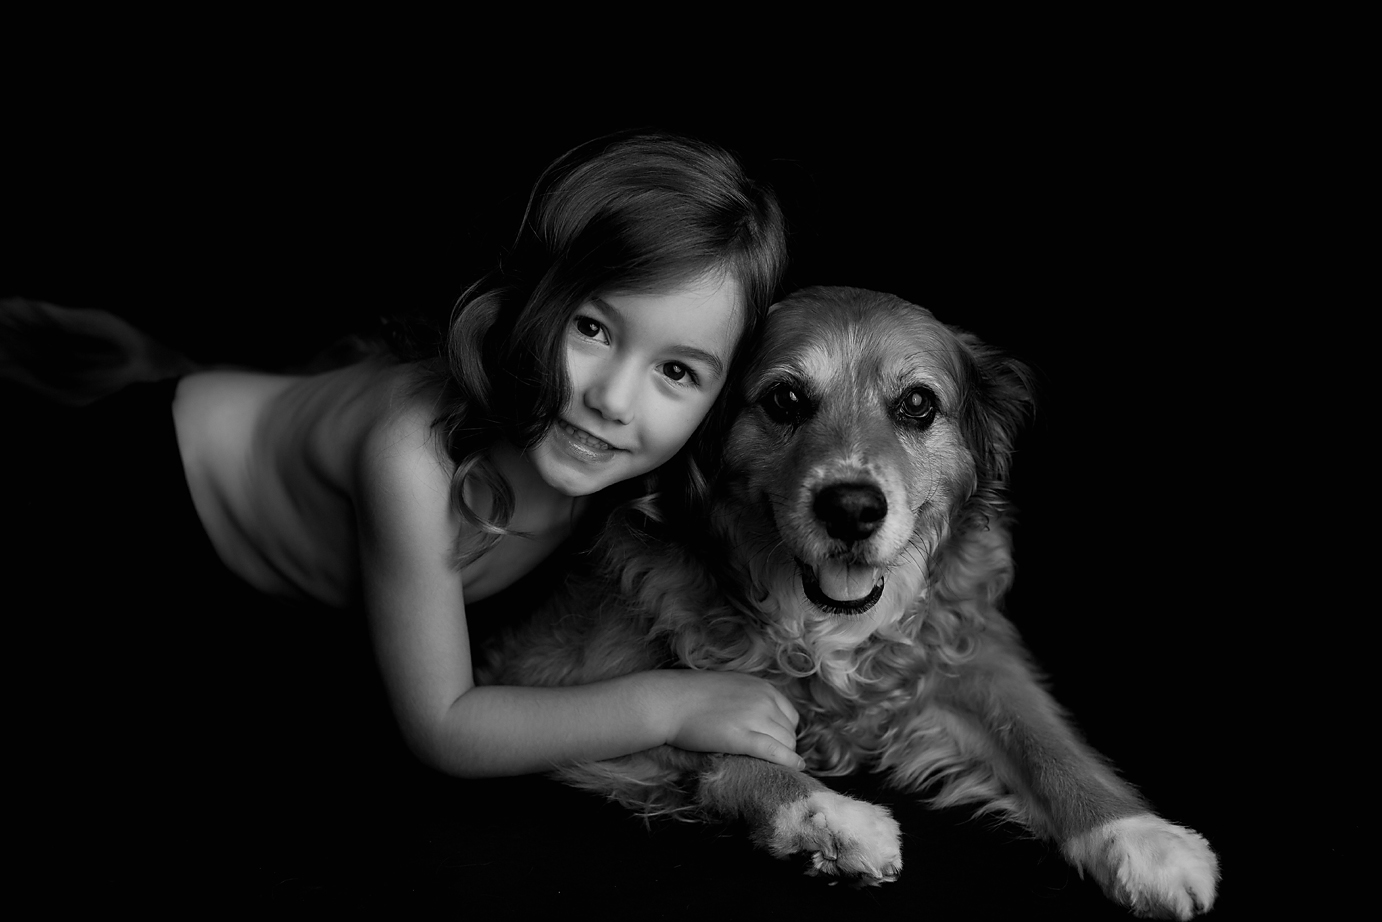 orange-county-child-photography-studio-girl-and-dog-black-and-white.jpg